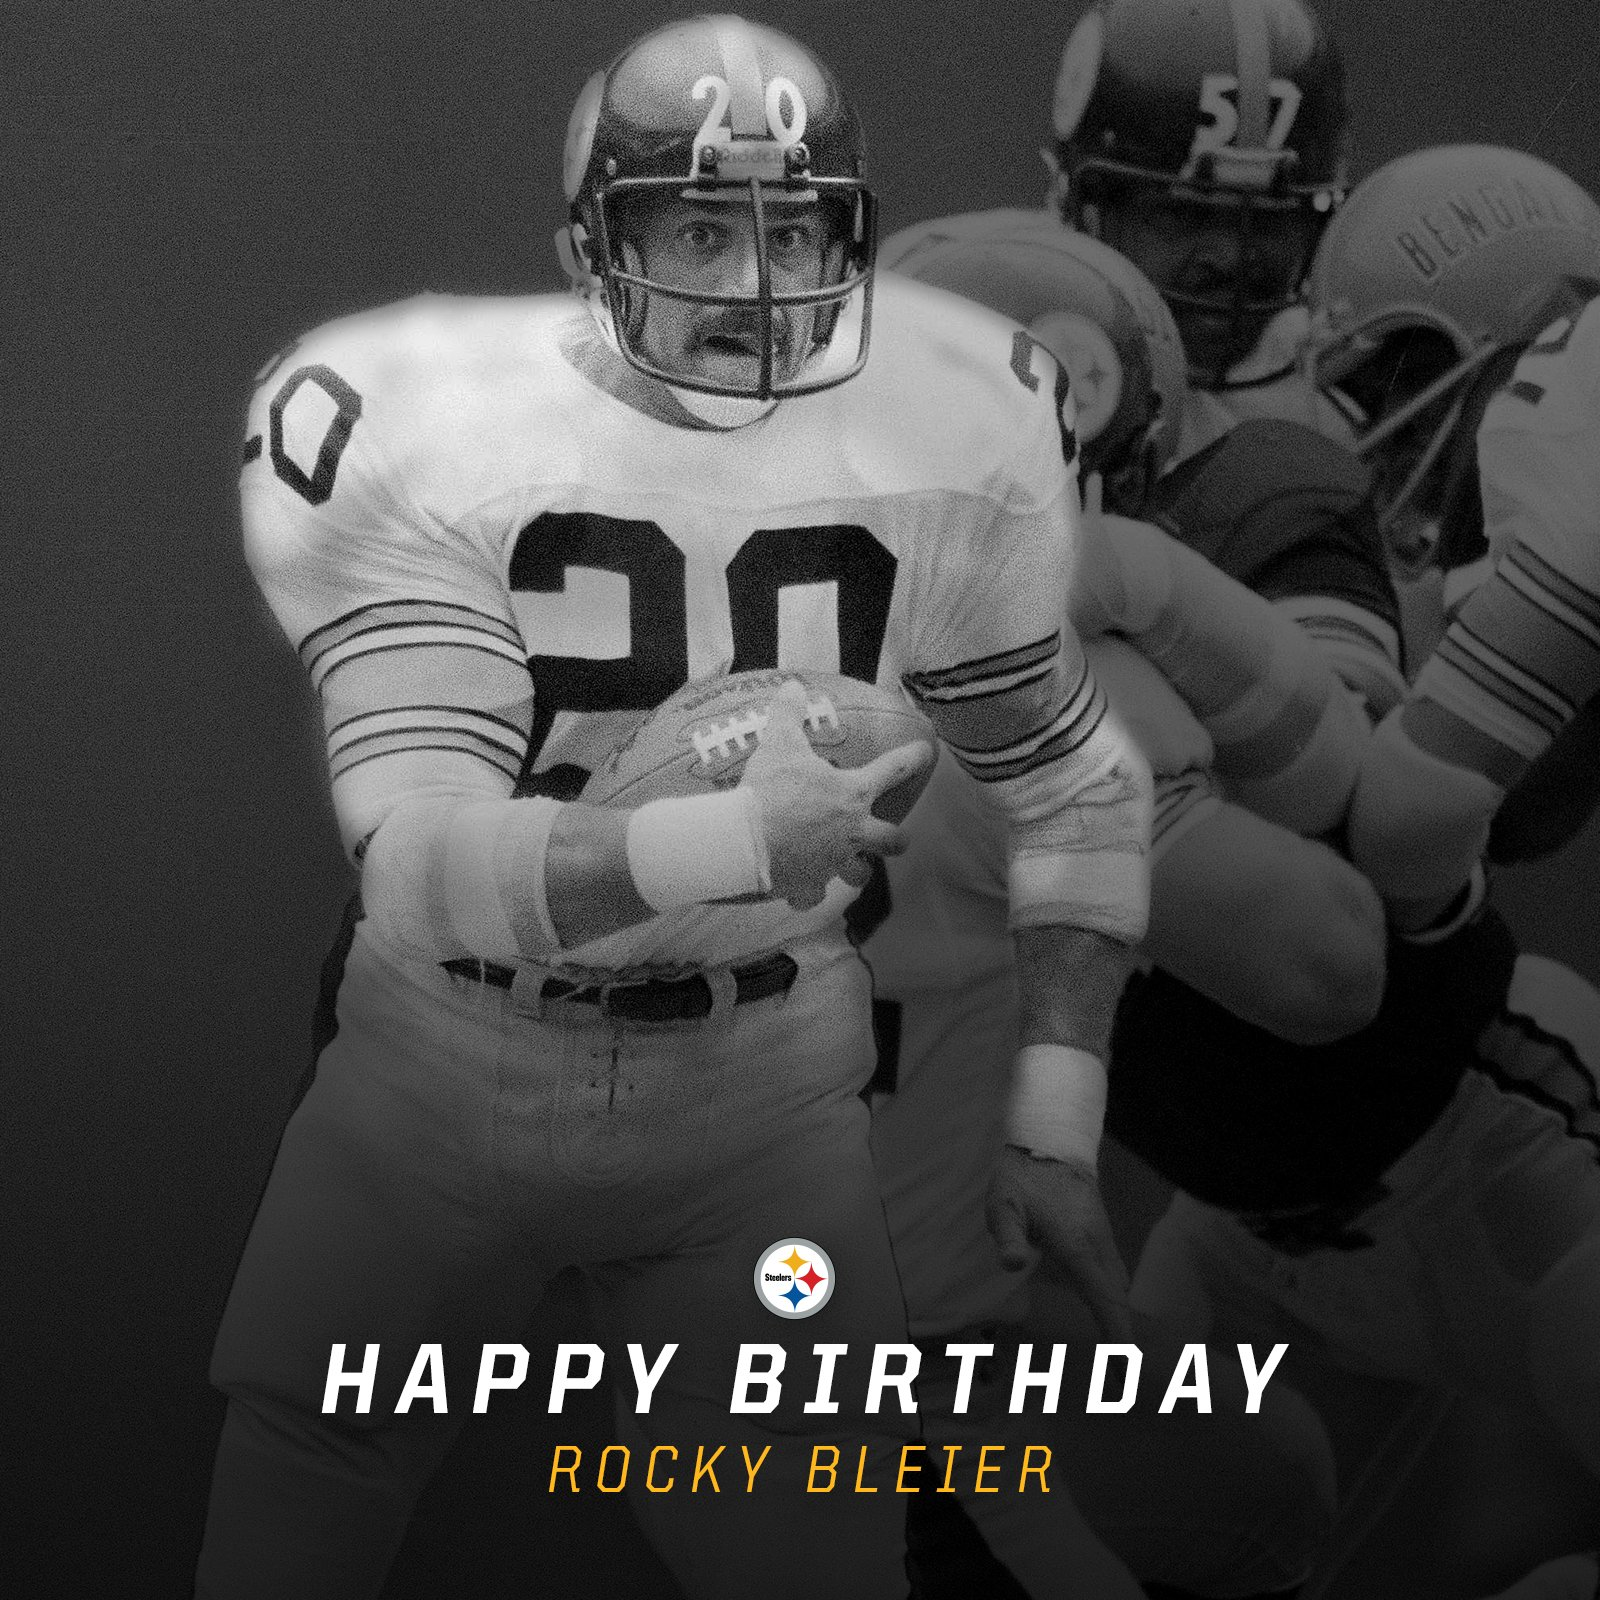 #HappyBirthday @RockyBleier‼️ https://t.co/au36v7yE31